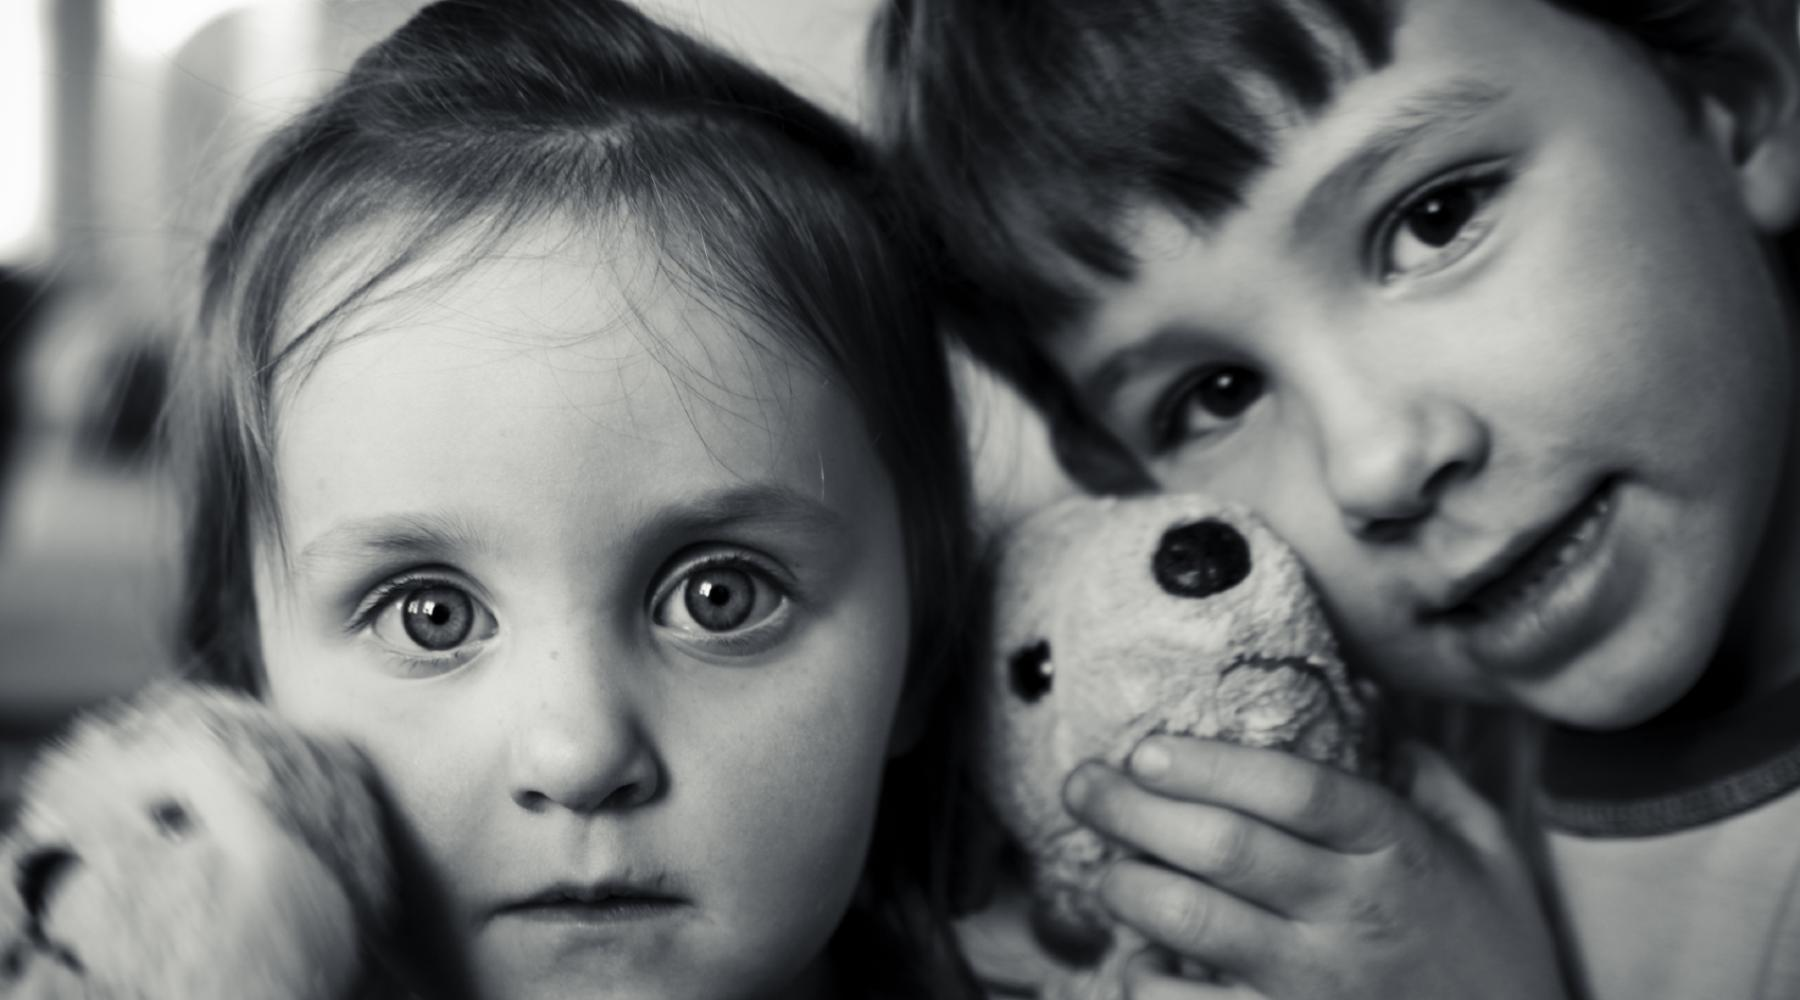 Kids with their stuffed animals.